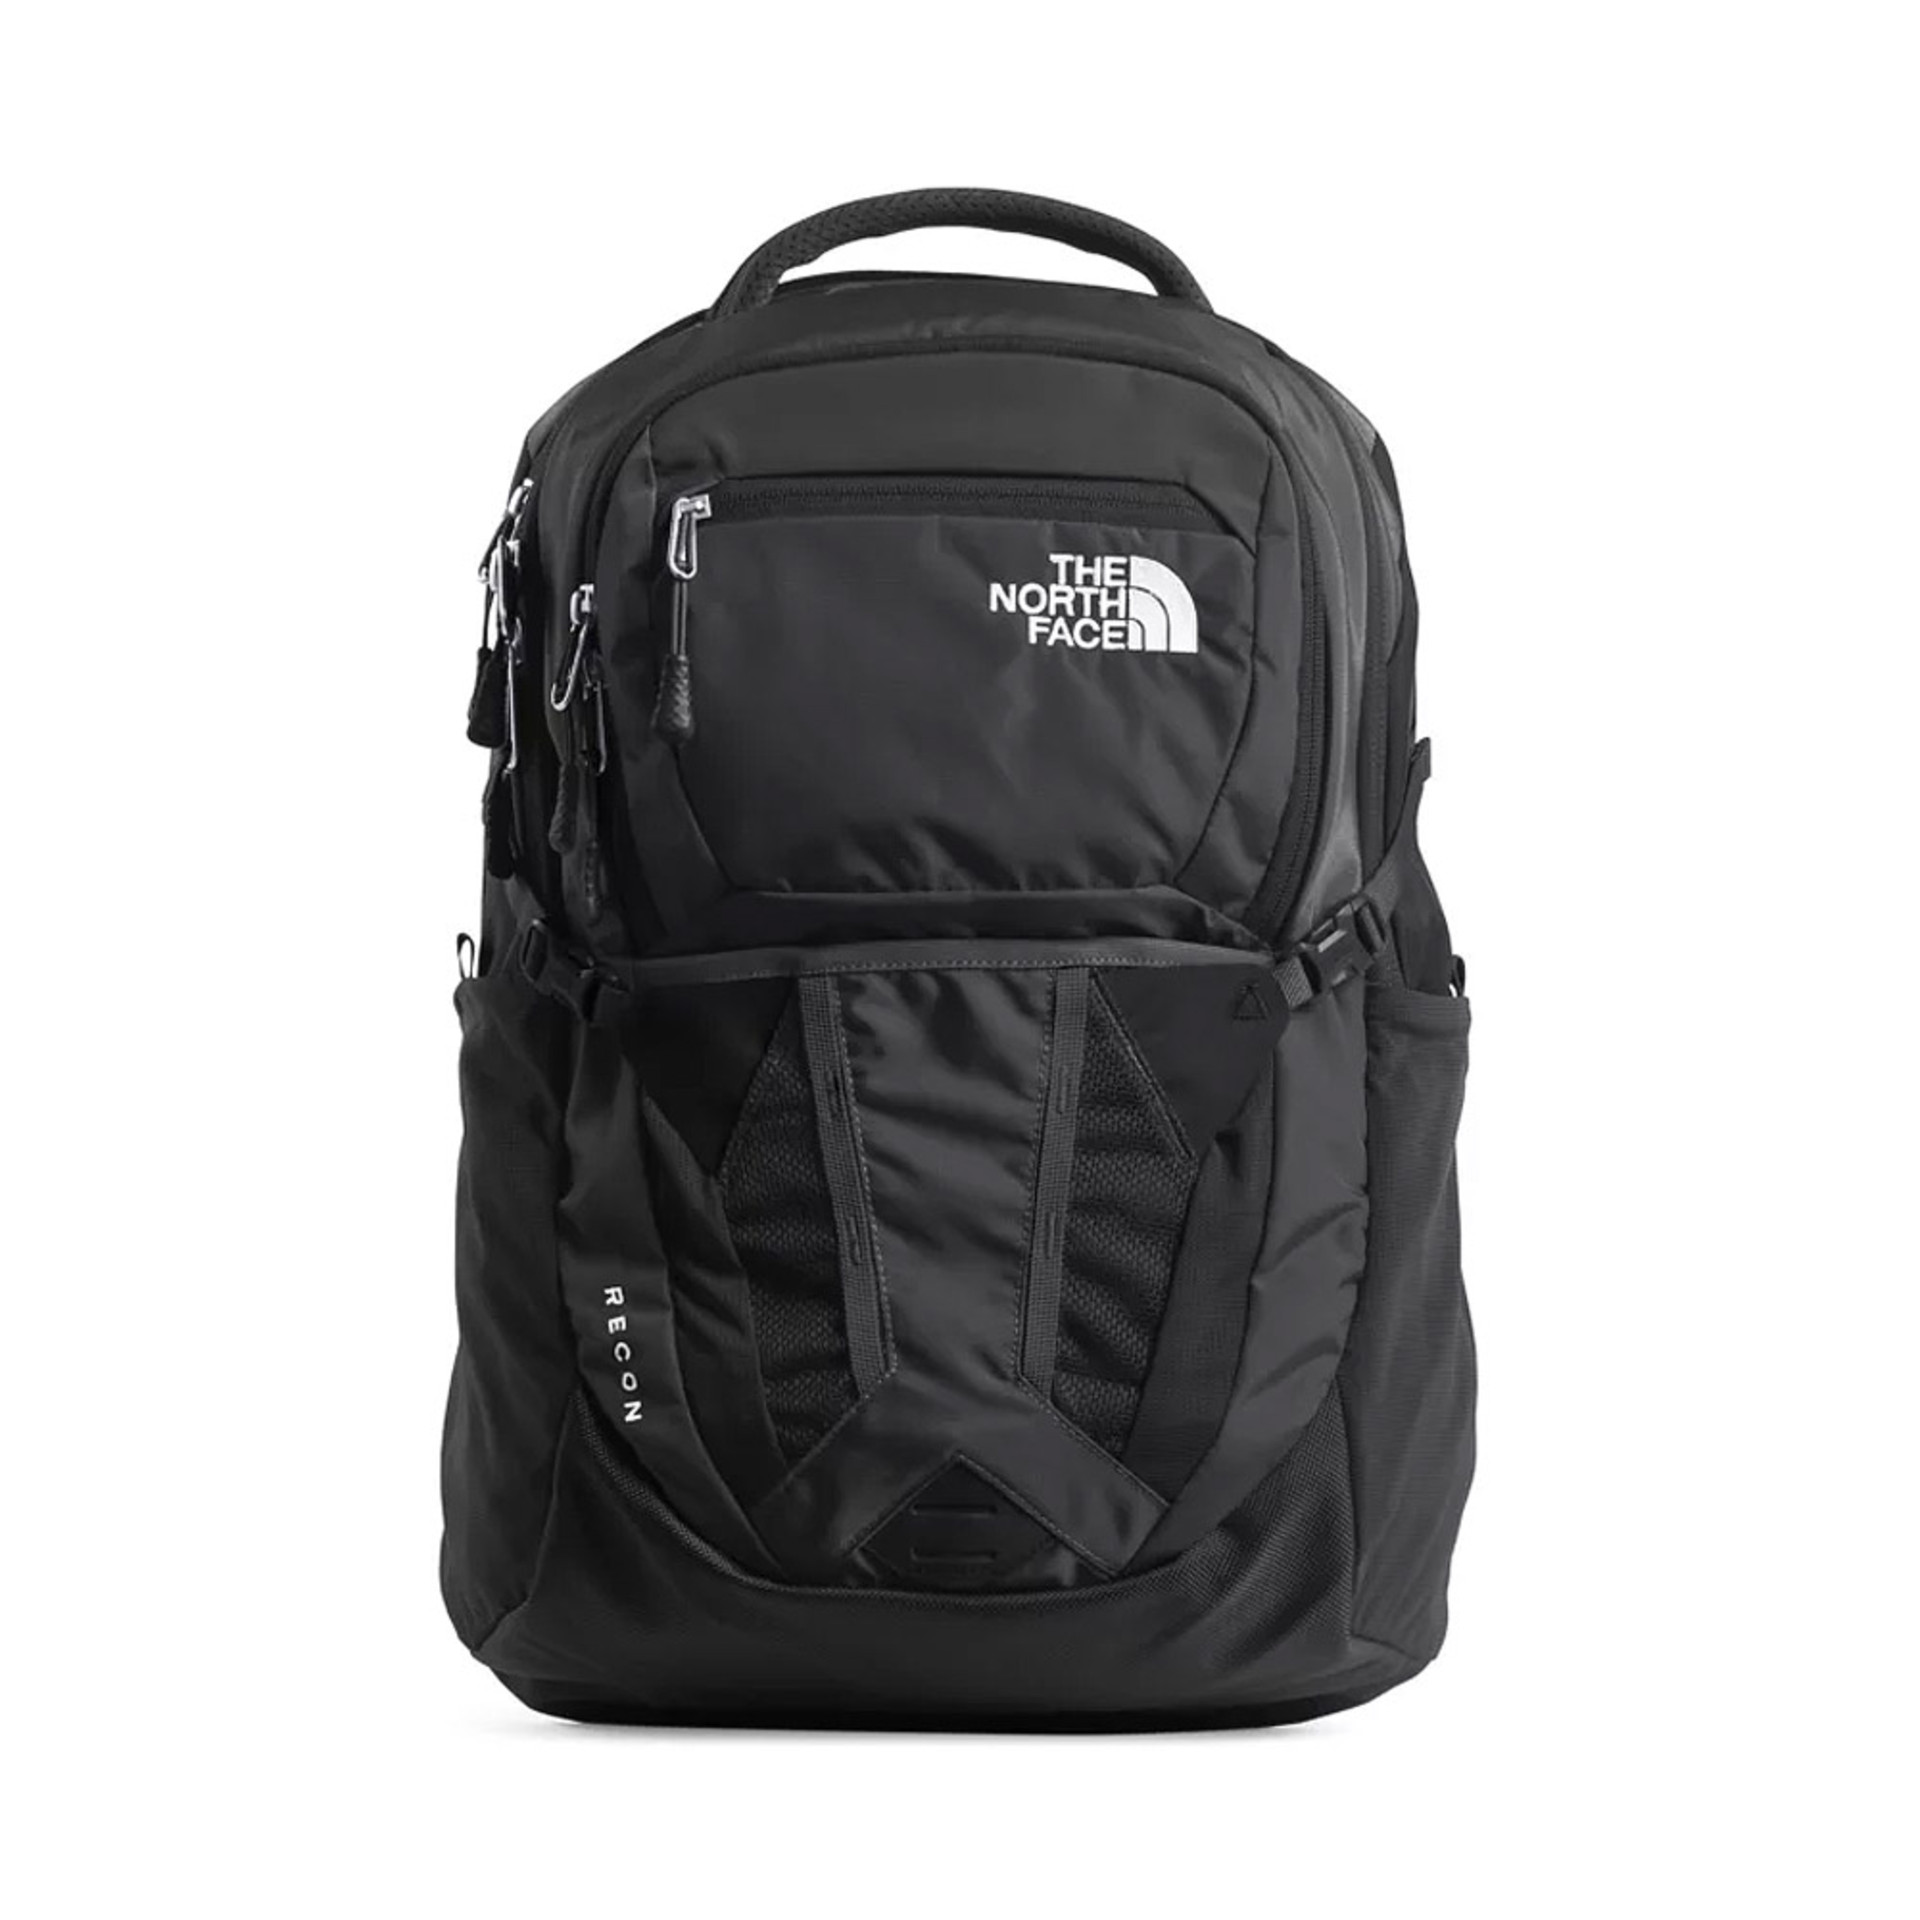 The North Face Women's Recon Backpack Black Front